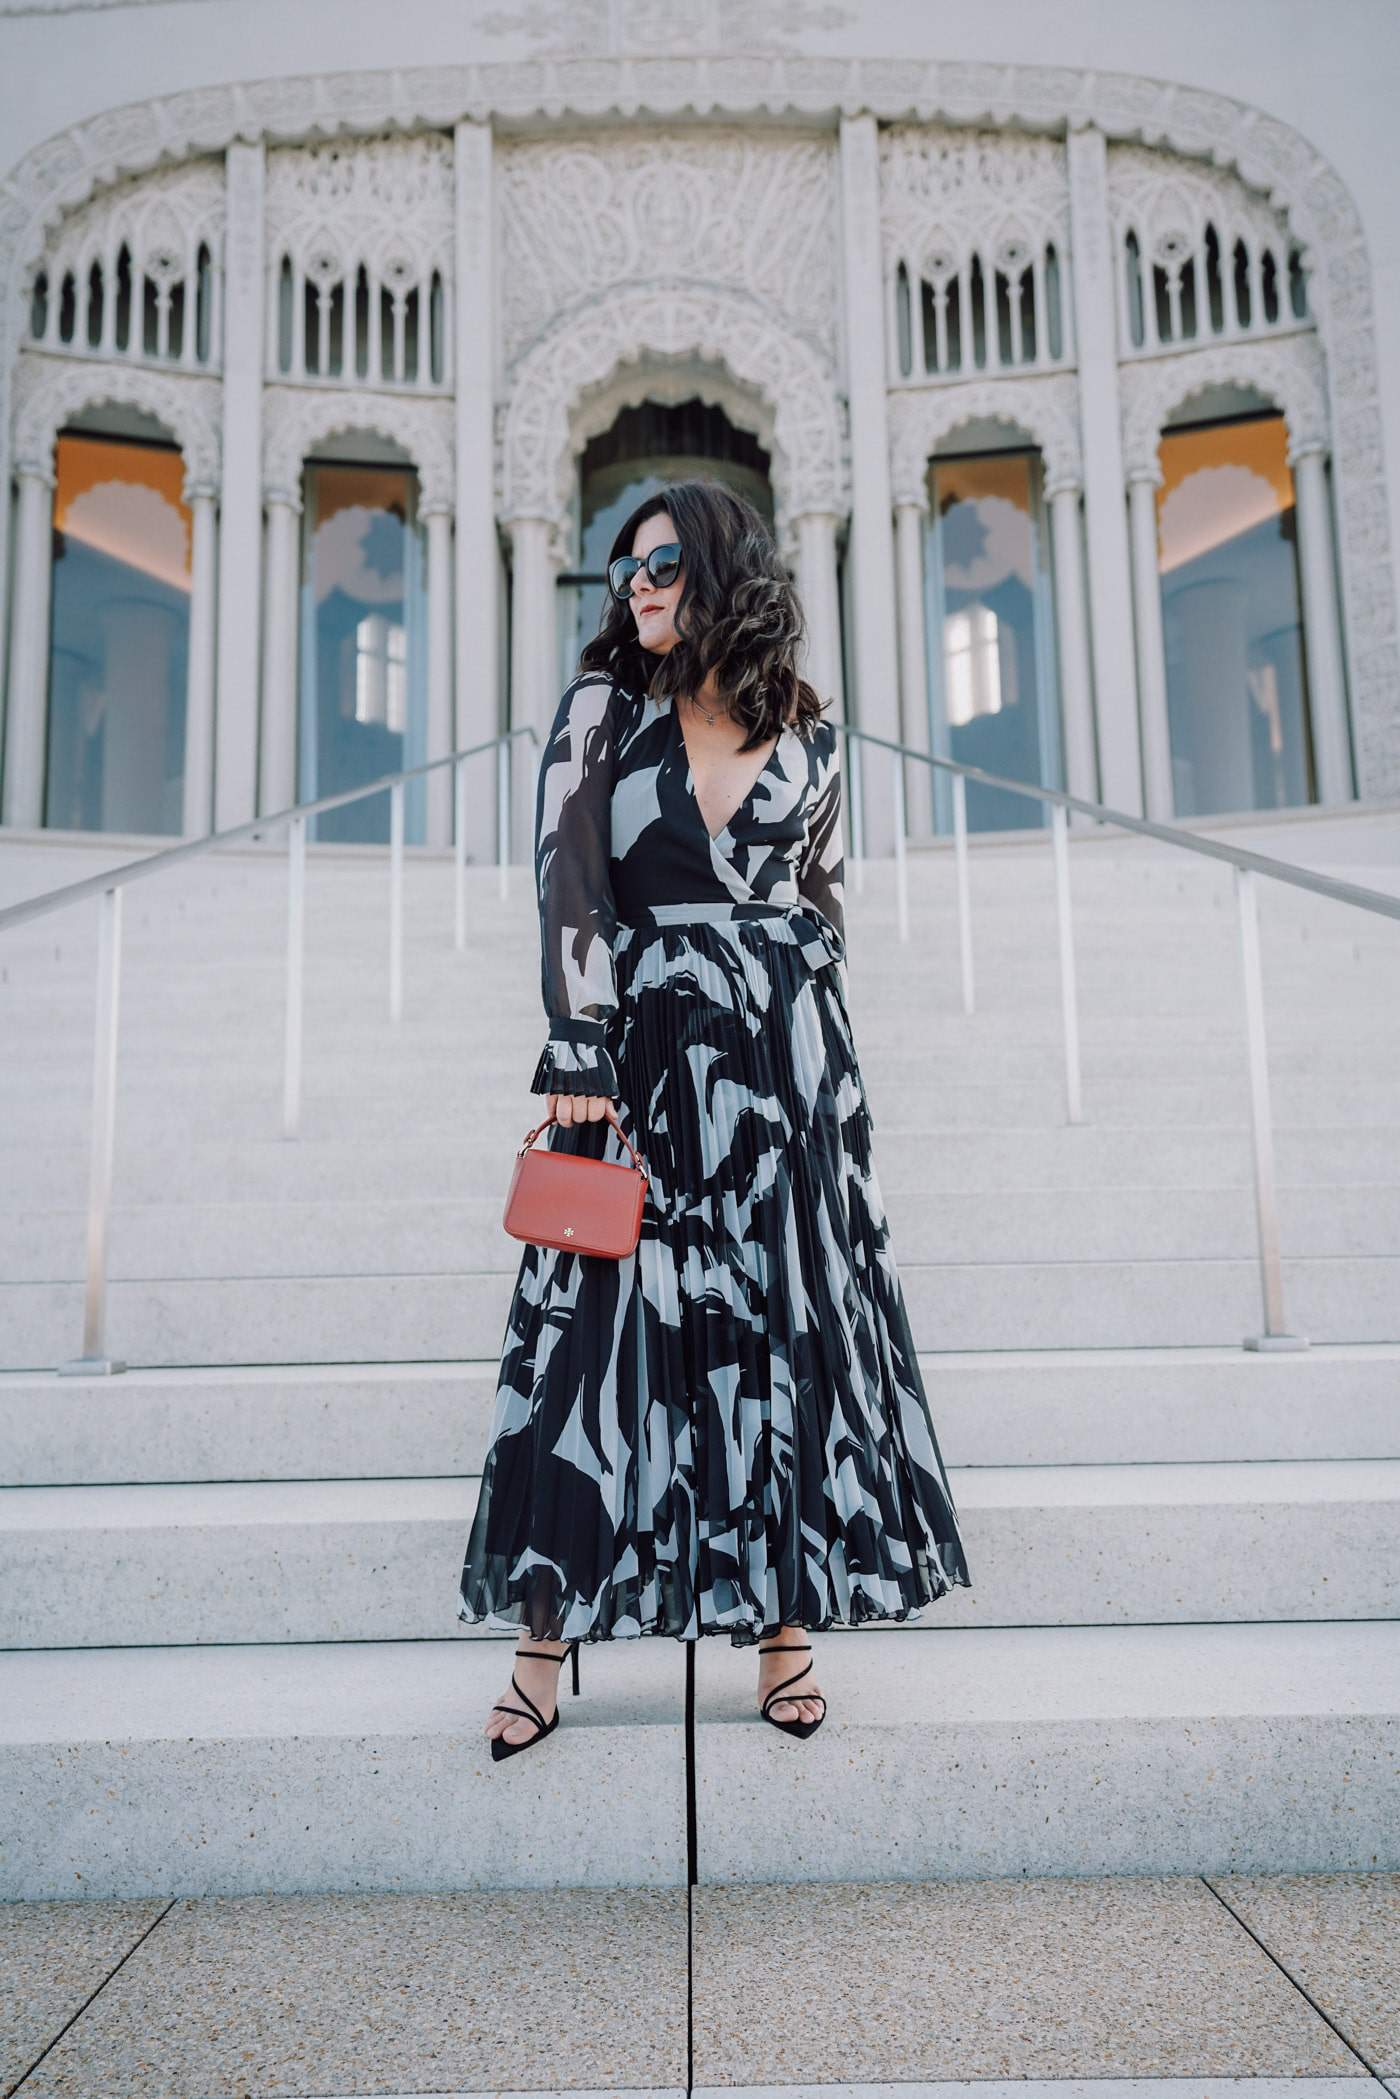 Anna of A Lily Love Affair shares this seasons best Summer wedding guest dresses all under $100. There are over 30 wedding guest dresses included in the round-up. Don't miss these beautiful wedding dresses for every budget. Includes this affordable H&M maxi dress and Mango heels.